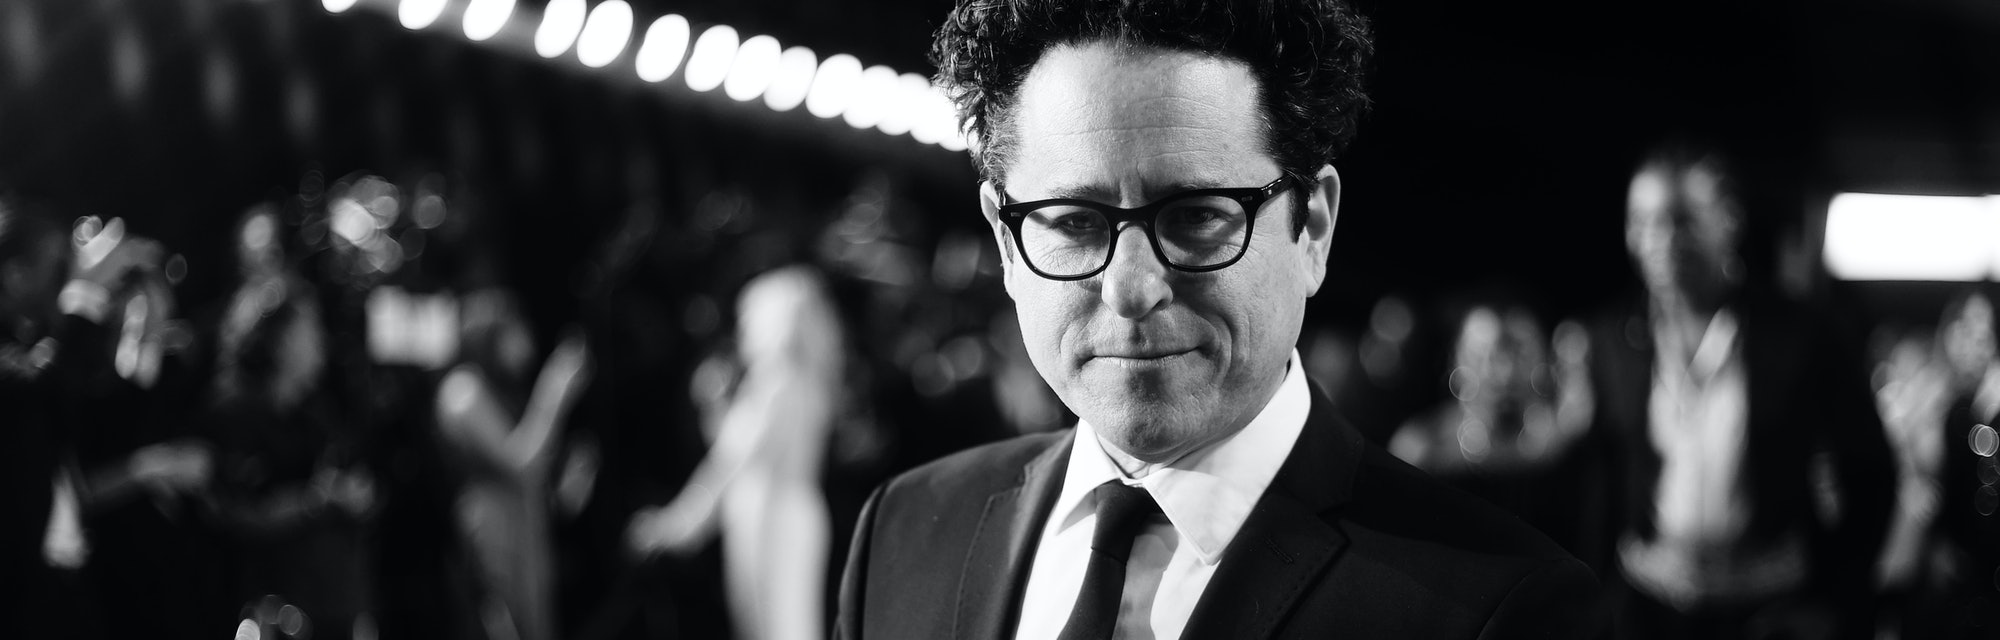 BEVERLY HILLS, CALIFORNIA - FEBRUARY 09: (This image has been photographed in Black and white) J.J. Abrams attends the 2020 Vanity Fair Oscar Party hosted by Radhika Jones at Wallis Annenberg Center for the Performing Arts on February 09, 2020 in Beverly Hills, California. (Photo by Rich Fury/VF20/Getty Images for Vanity Fair)